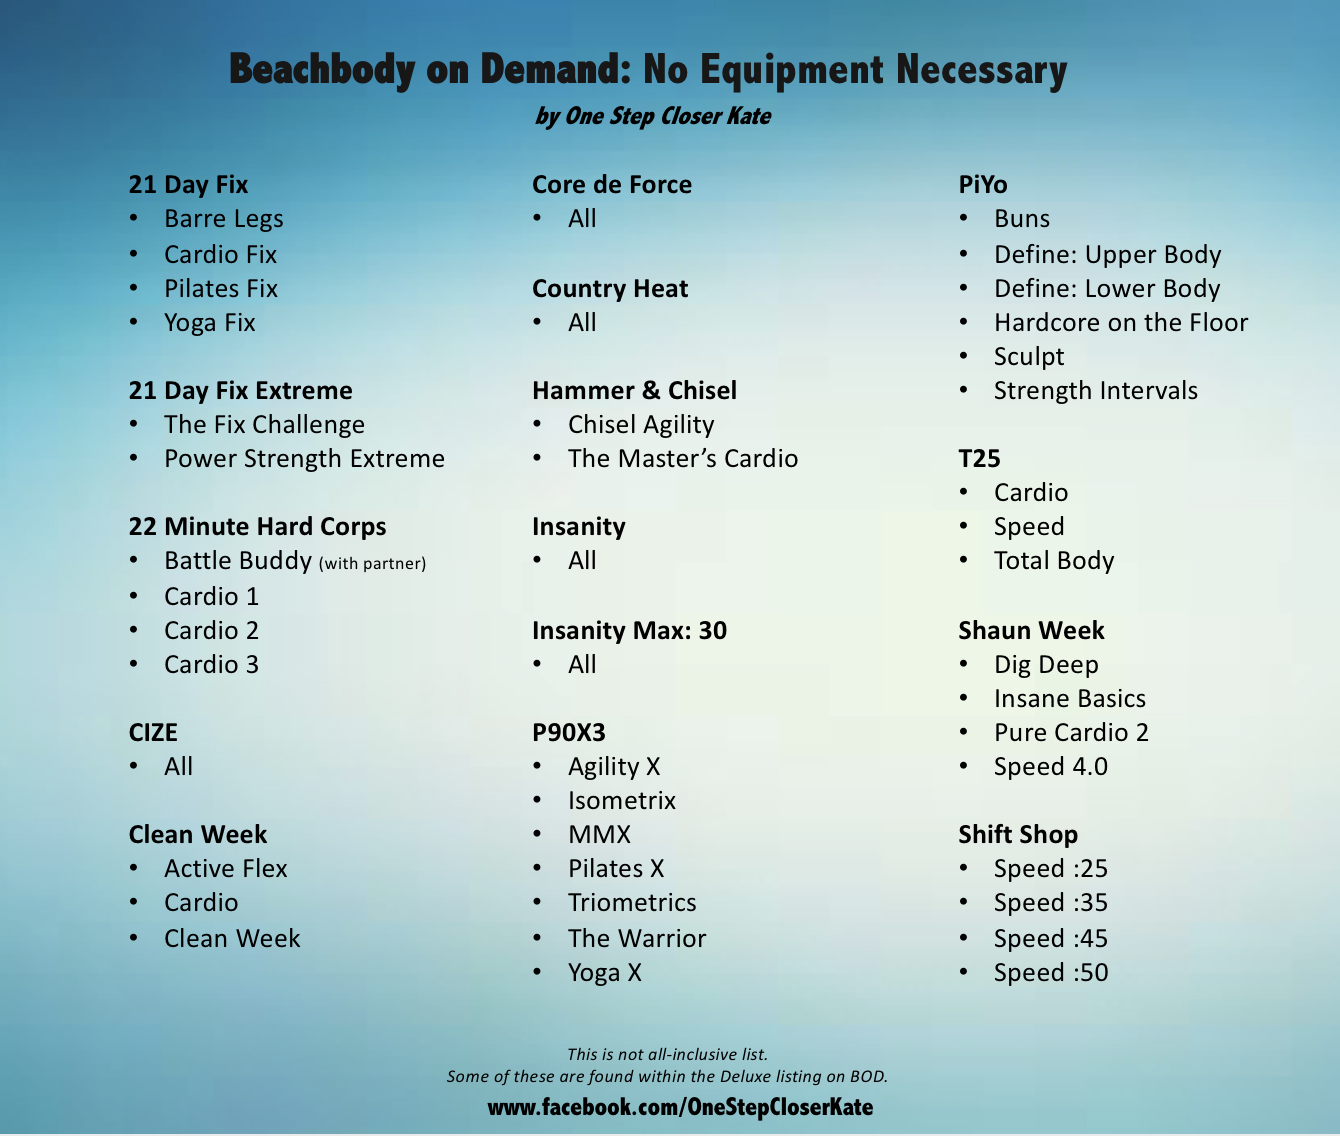 Beachbody On Demand Workouts That Require No Equipment One Step